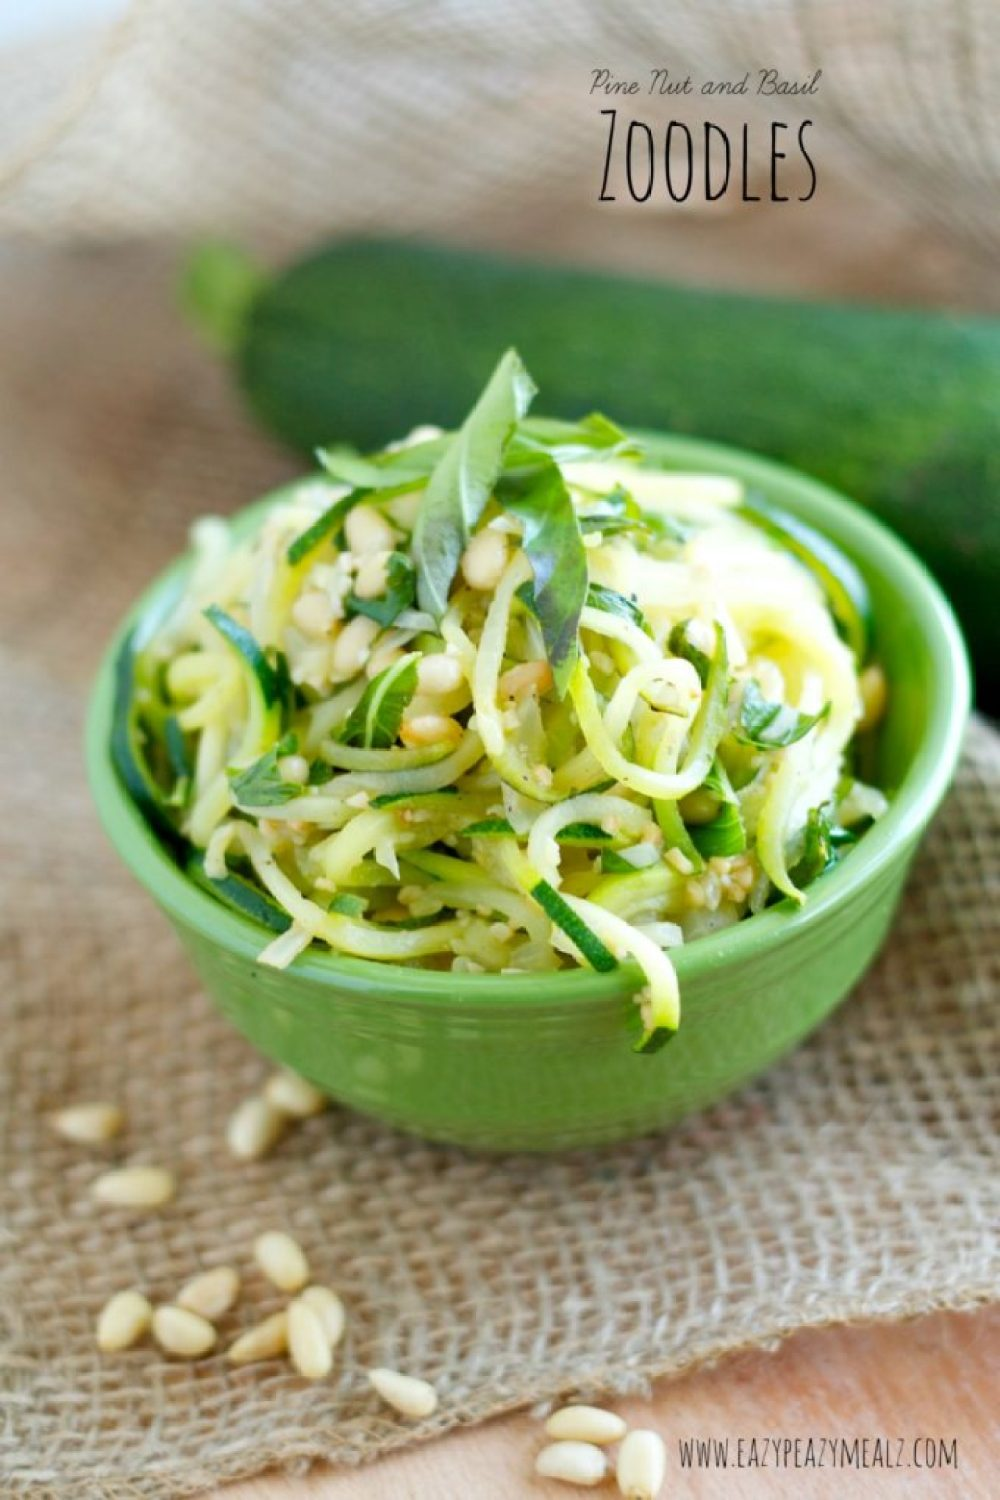 pine nut, zoodles, zucchini, basil